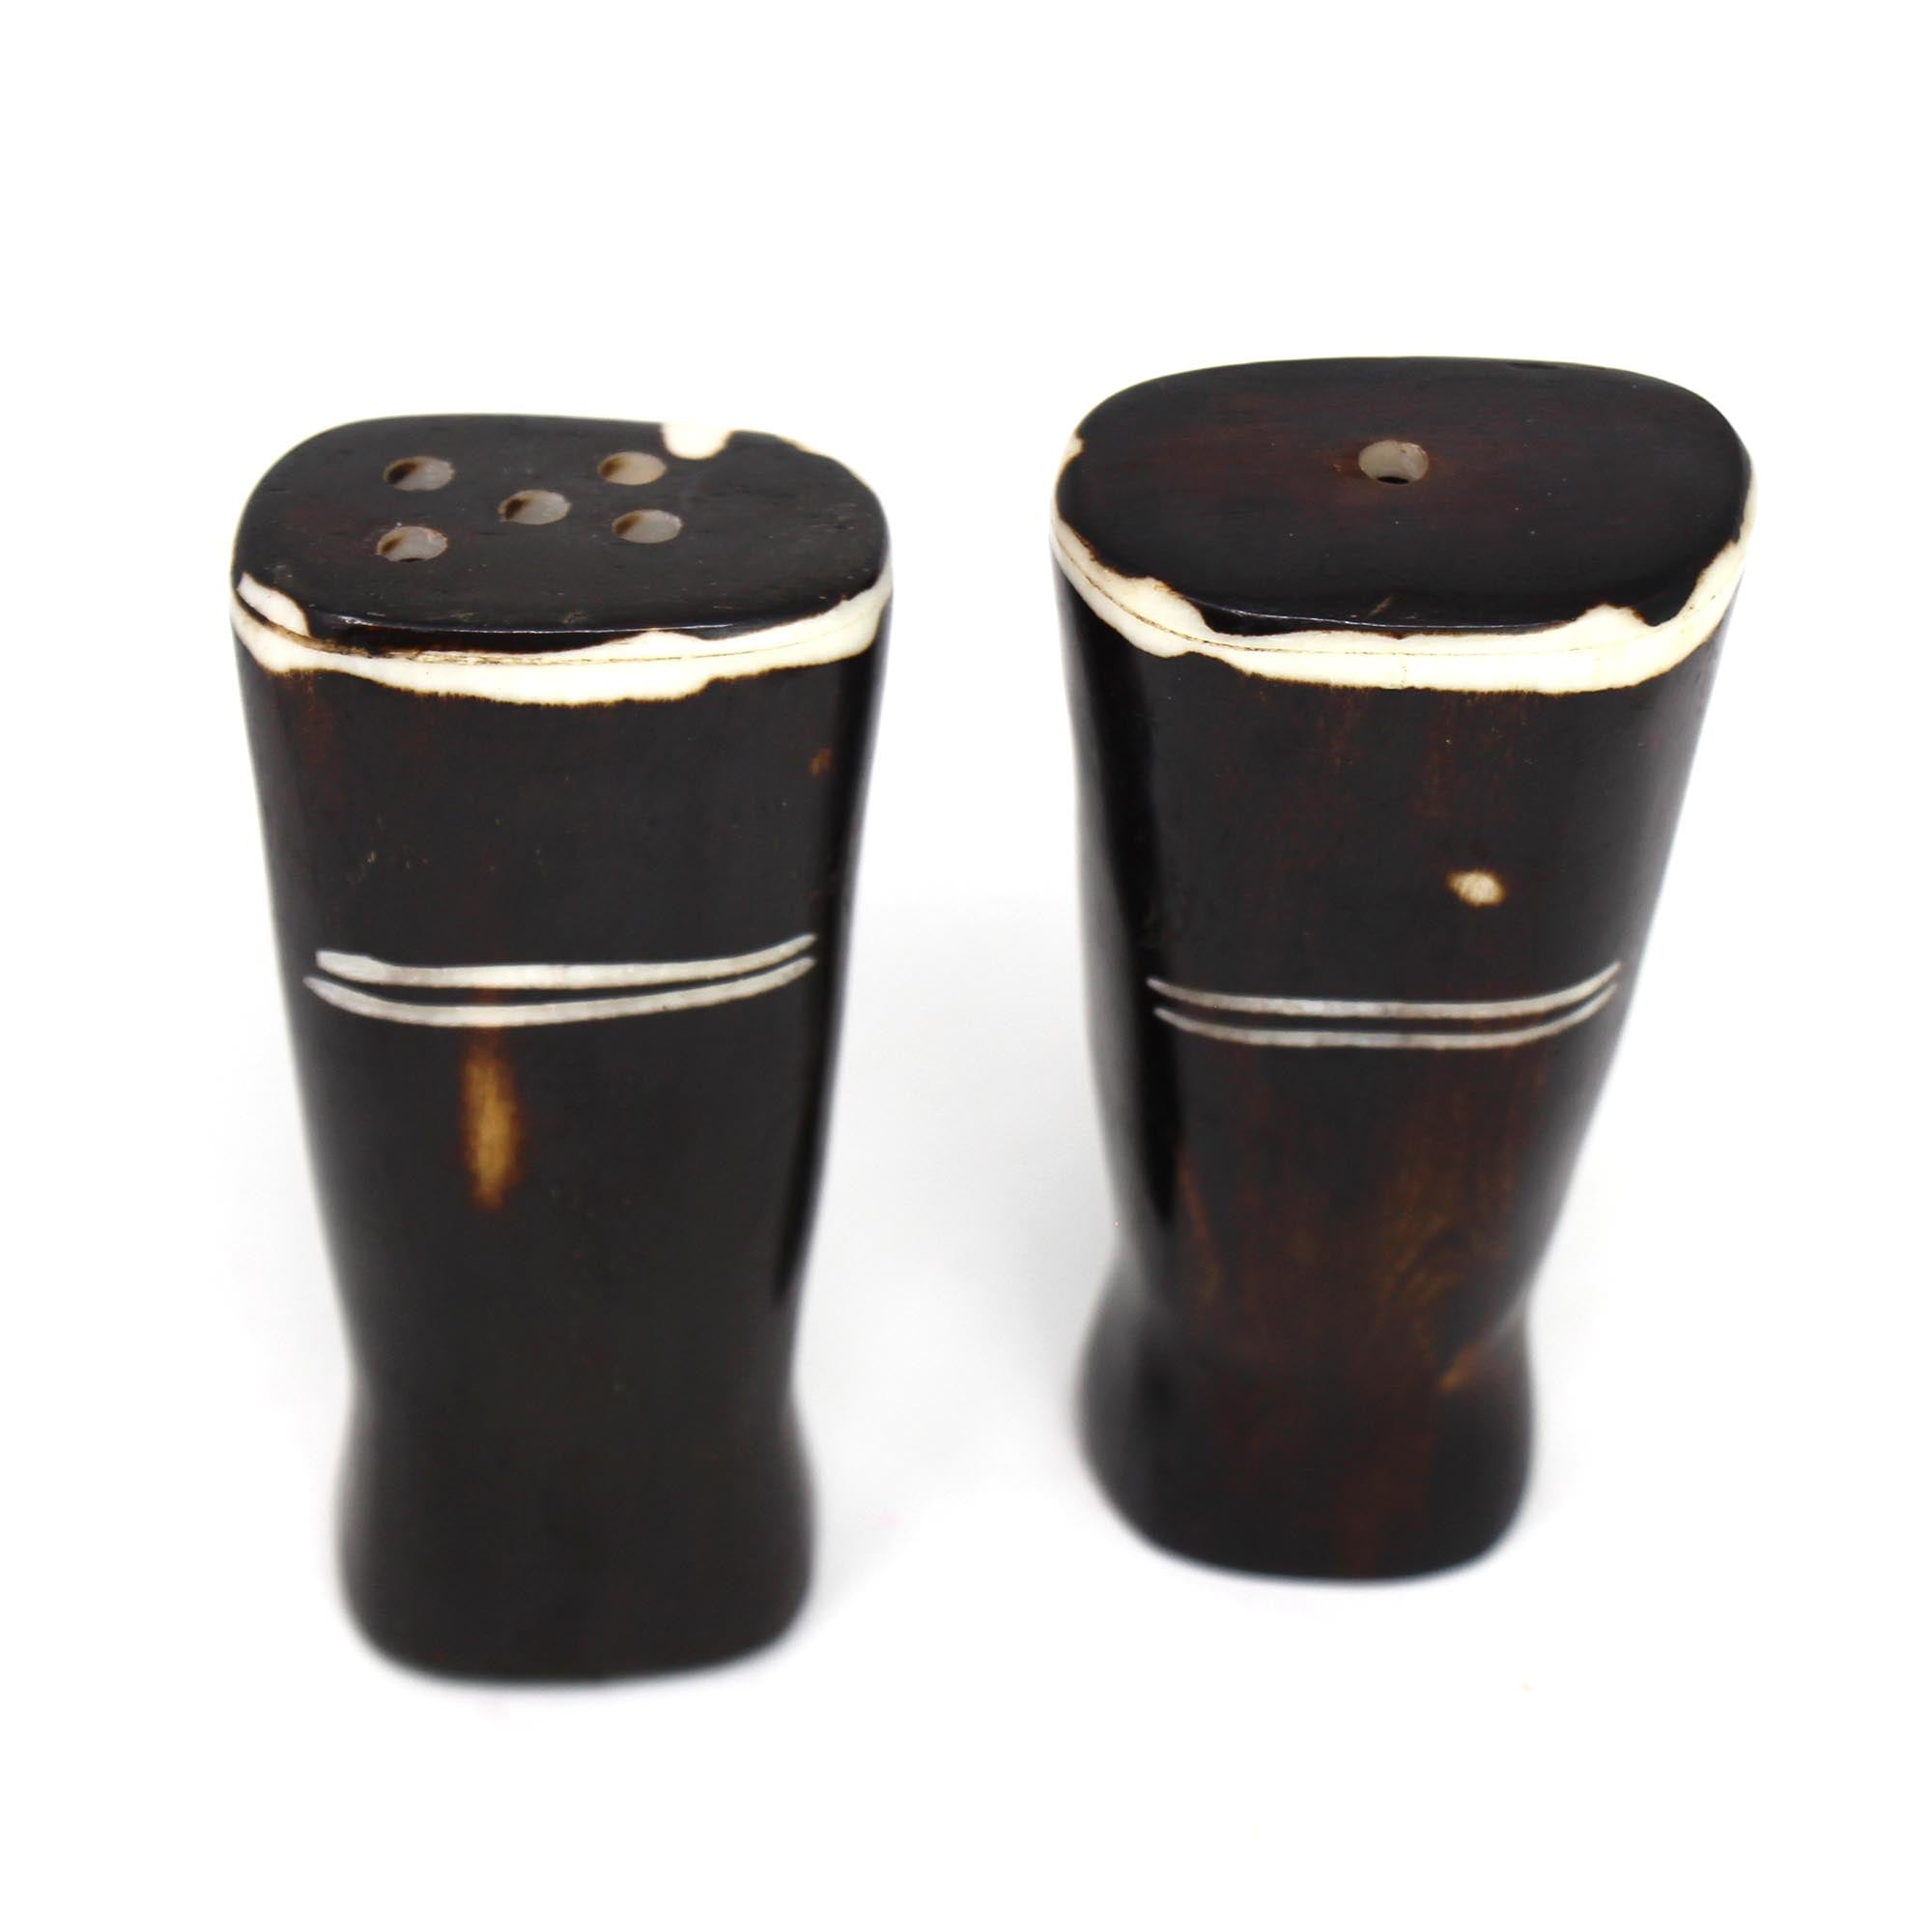 Batik Bone Salt & Pepper Shakers, White Etch Design on Dark